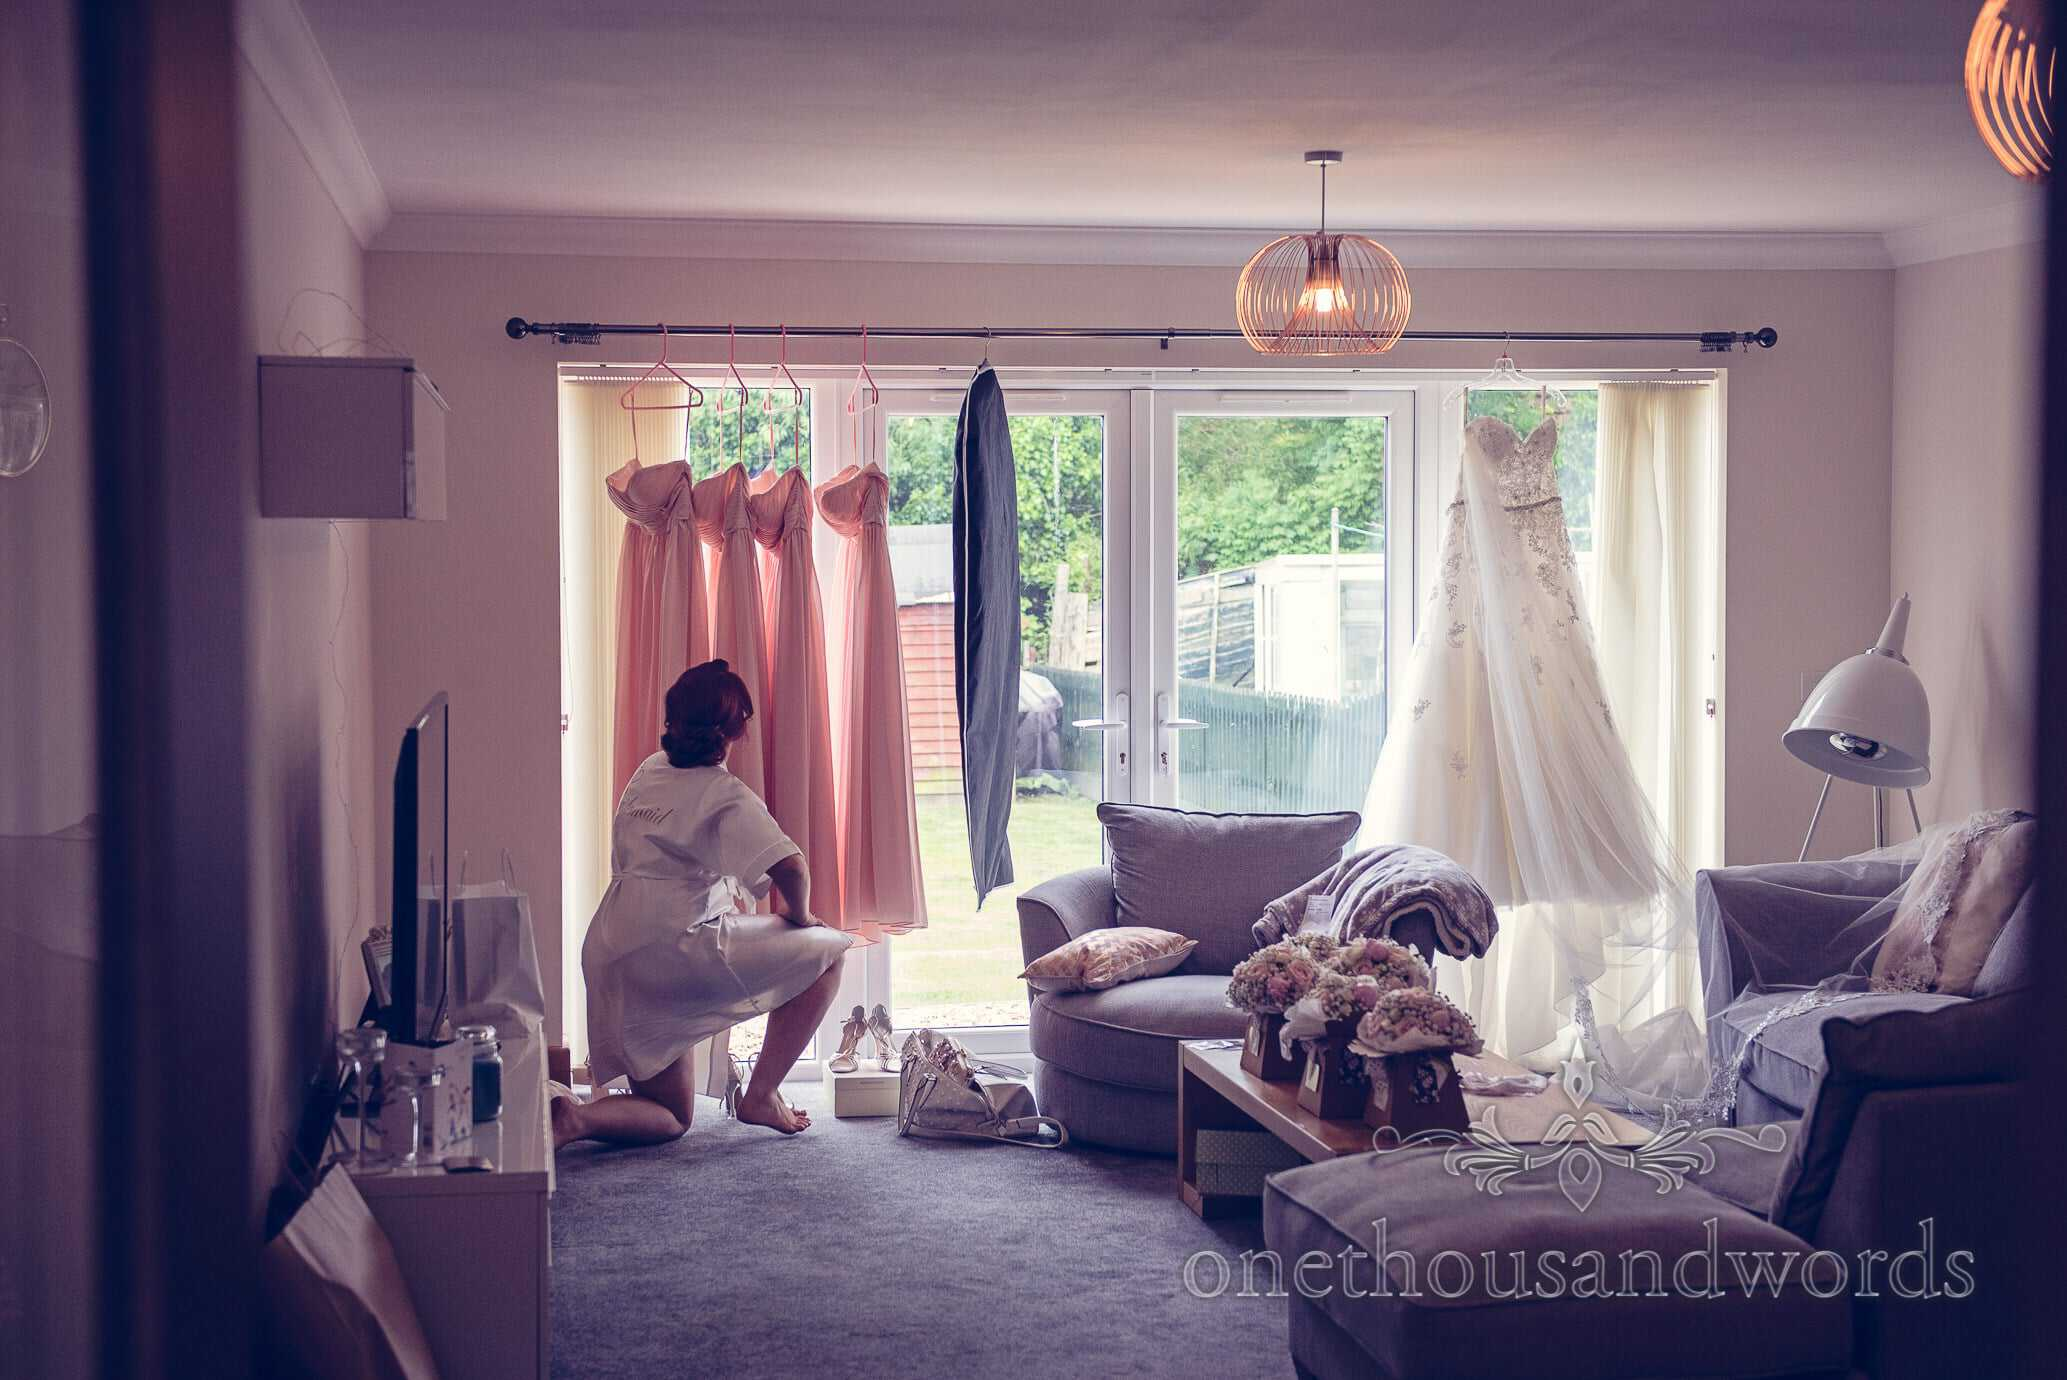 Bridal preparation room with dresses, flowers and shoes on wedding morning